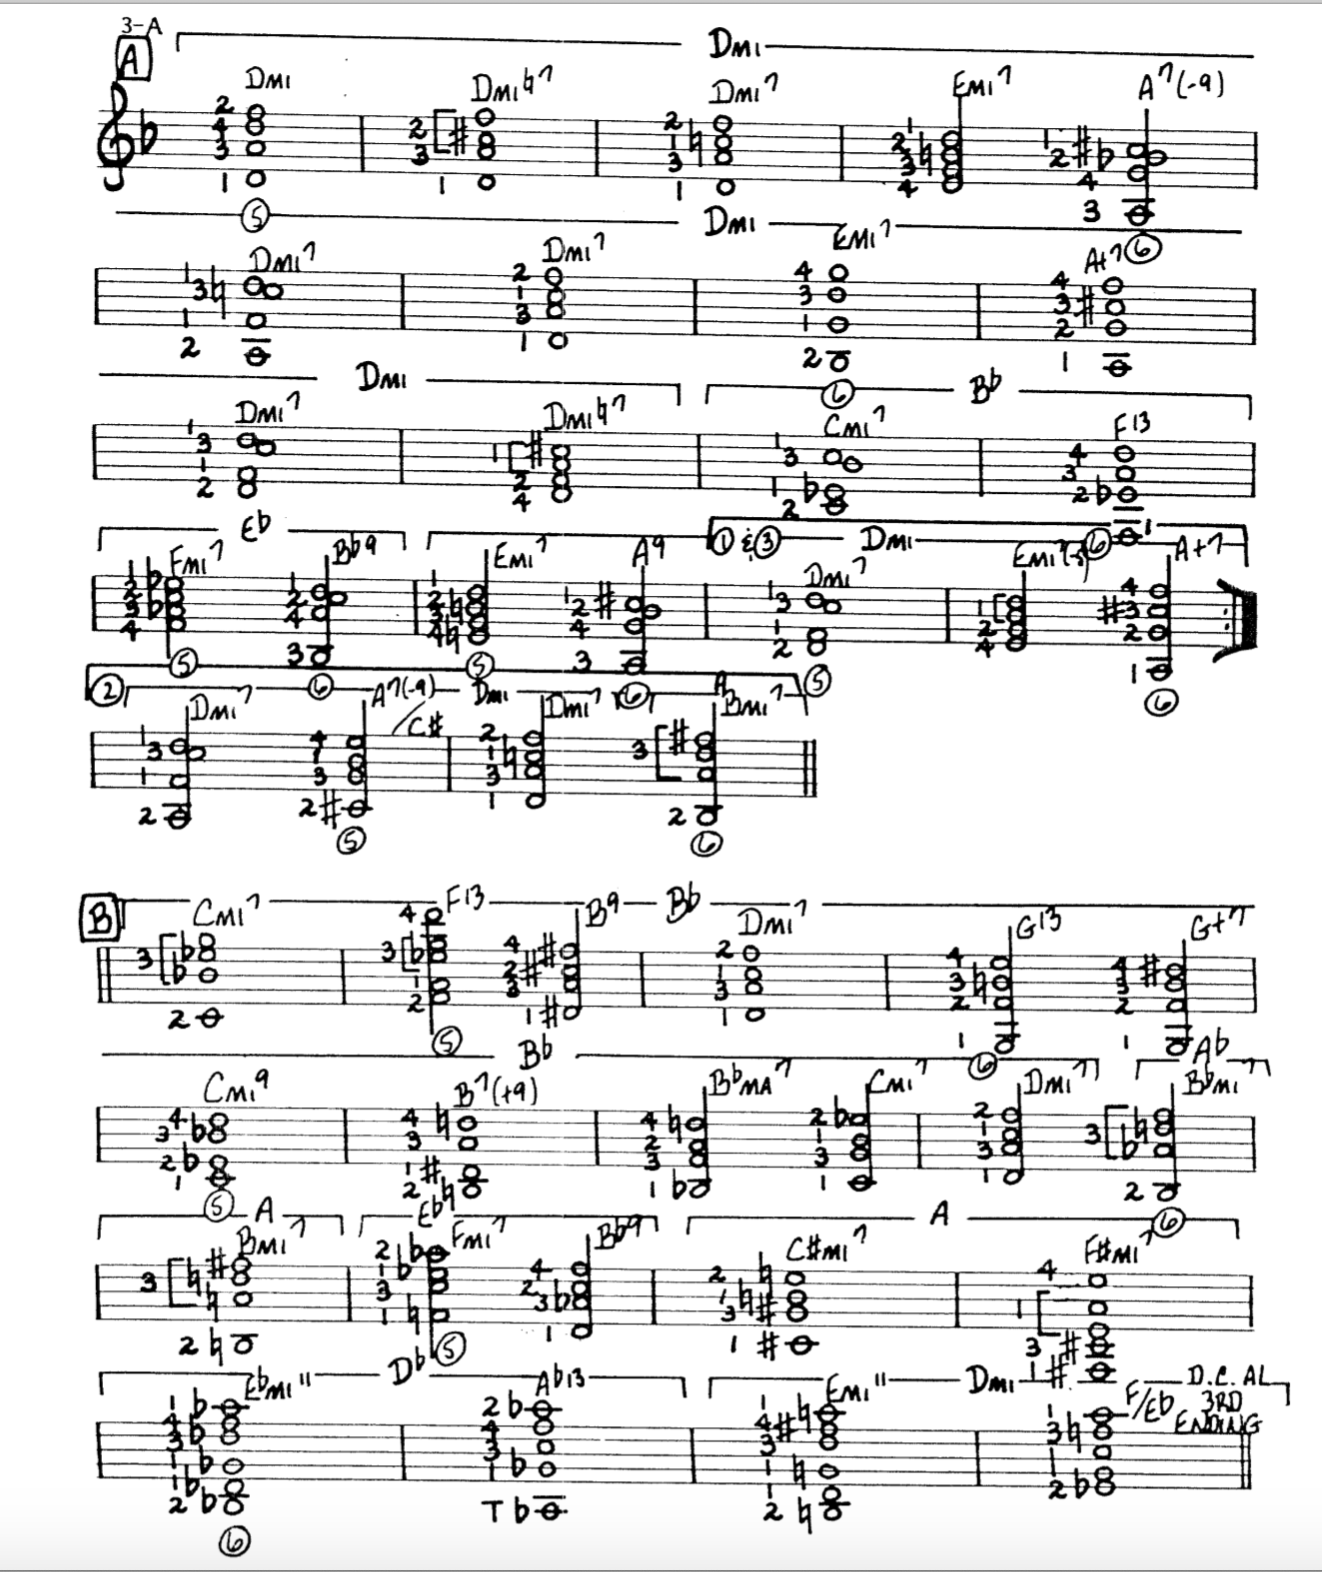 Howard Roberts Super Chops: study group for a tune based practice routine-screen-shot-2021-01-03-8-38-23-am-png